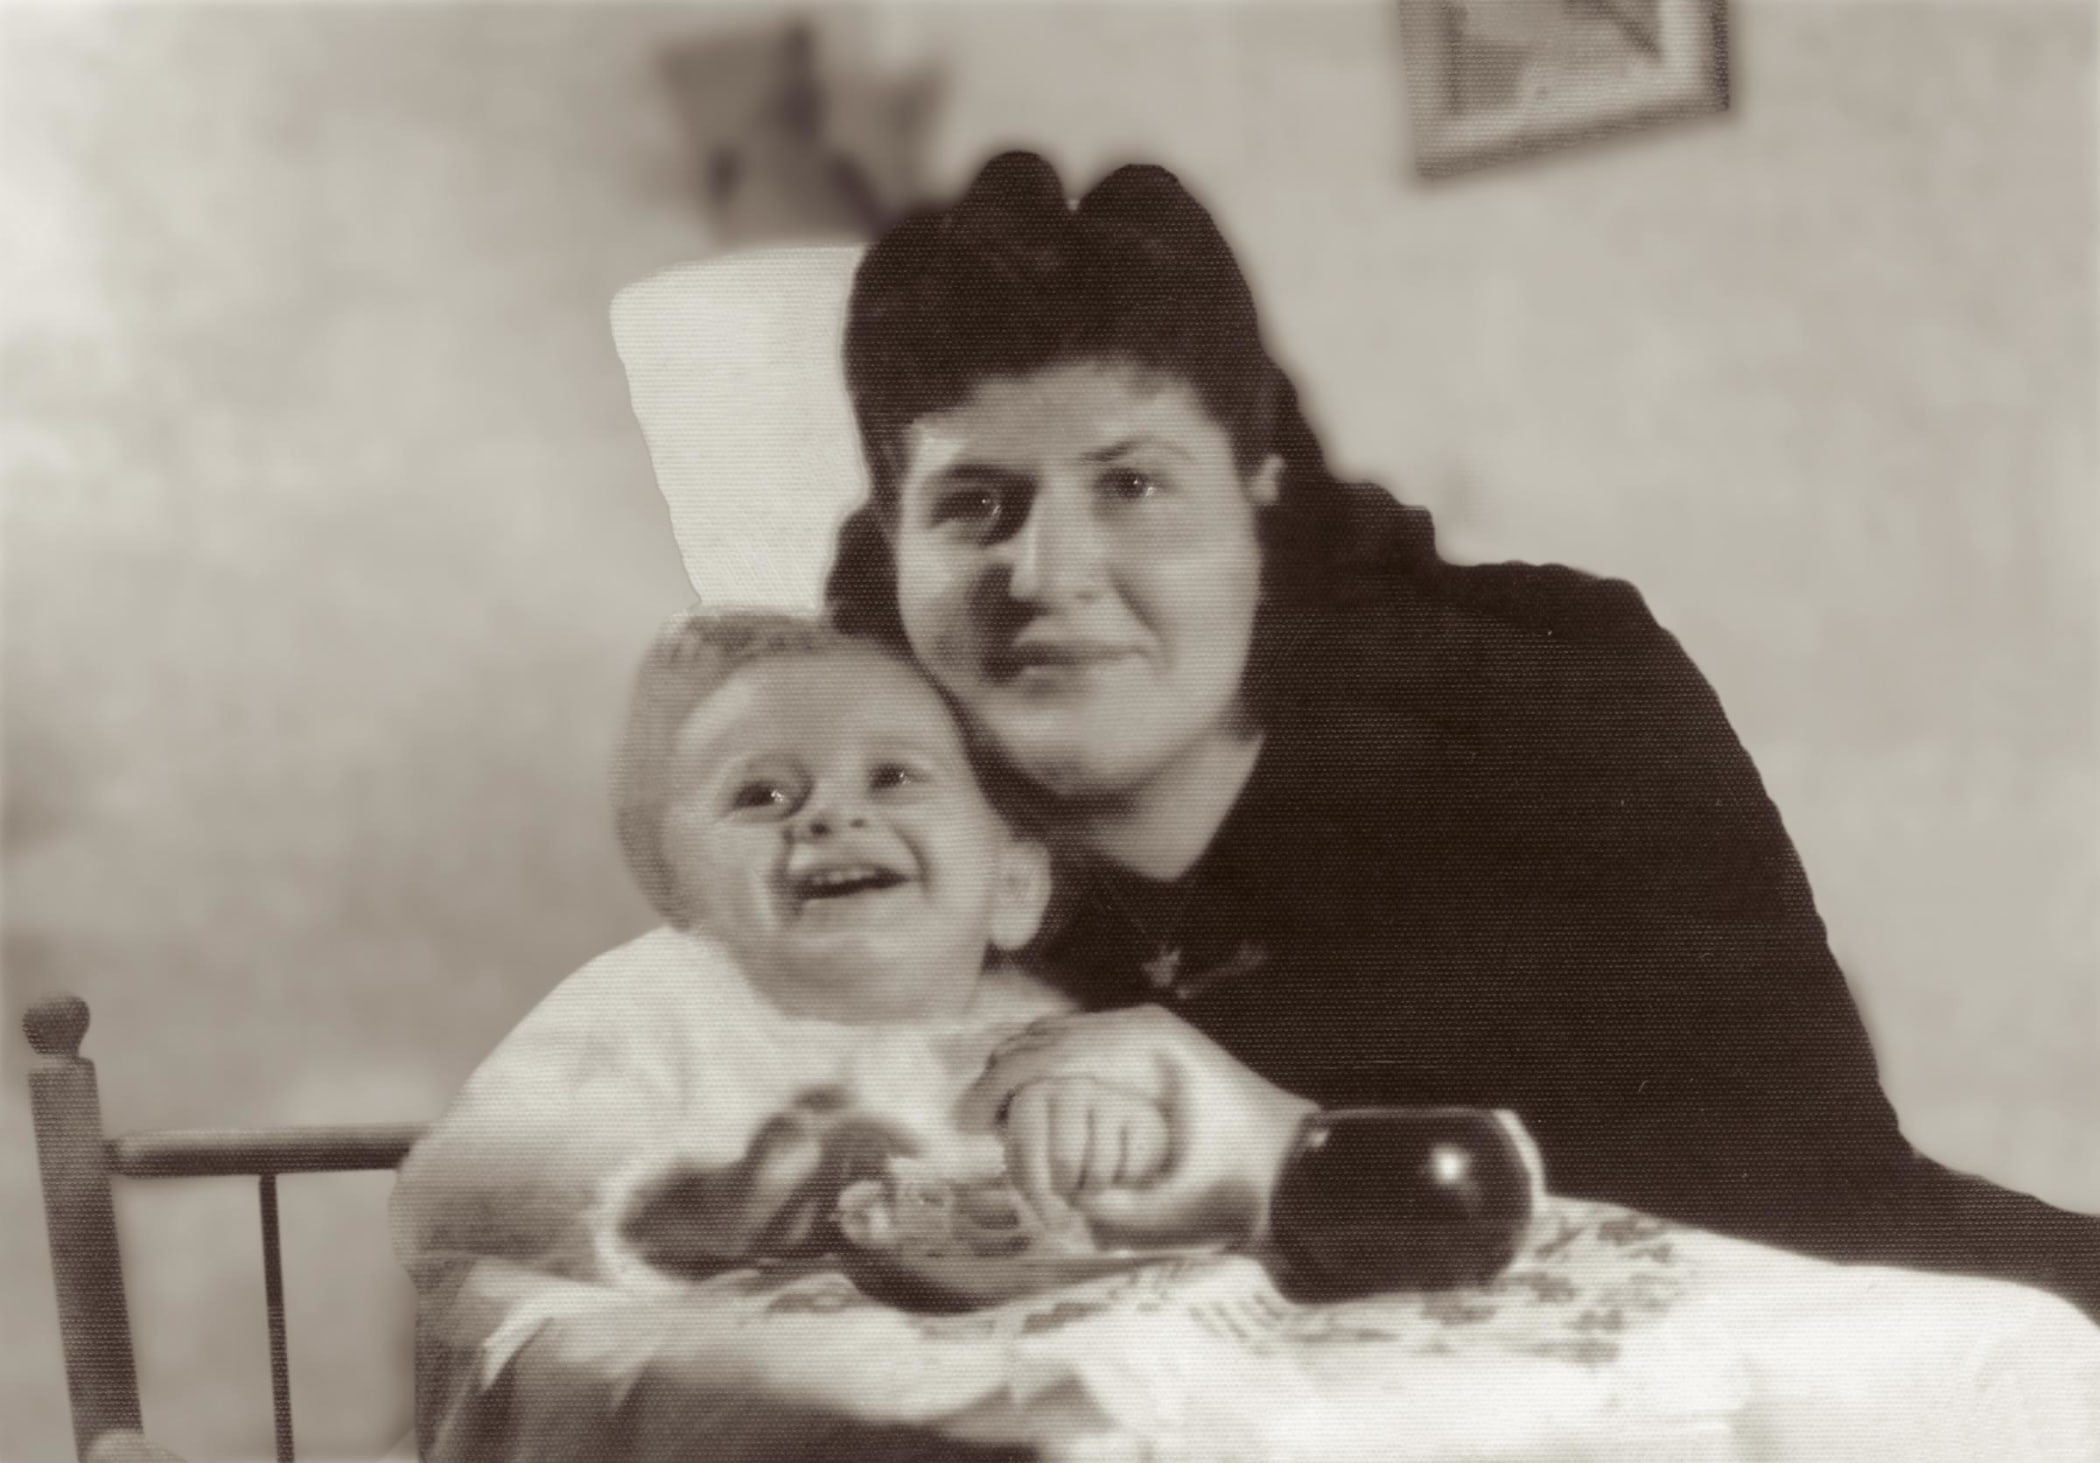 Schlessinger with his mother